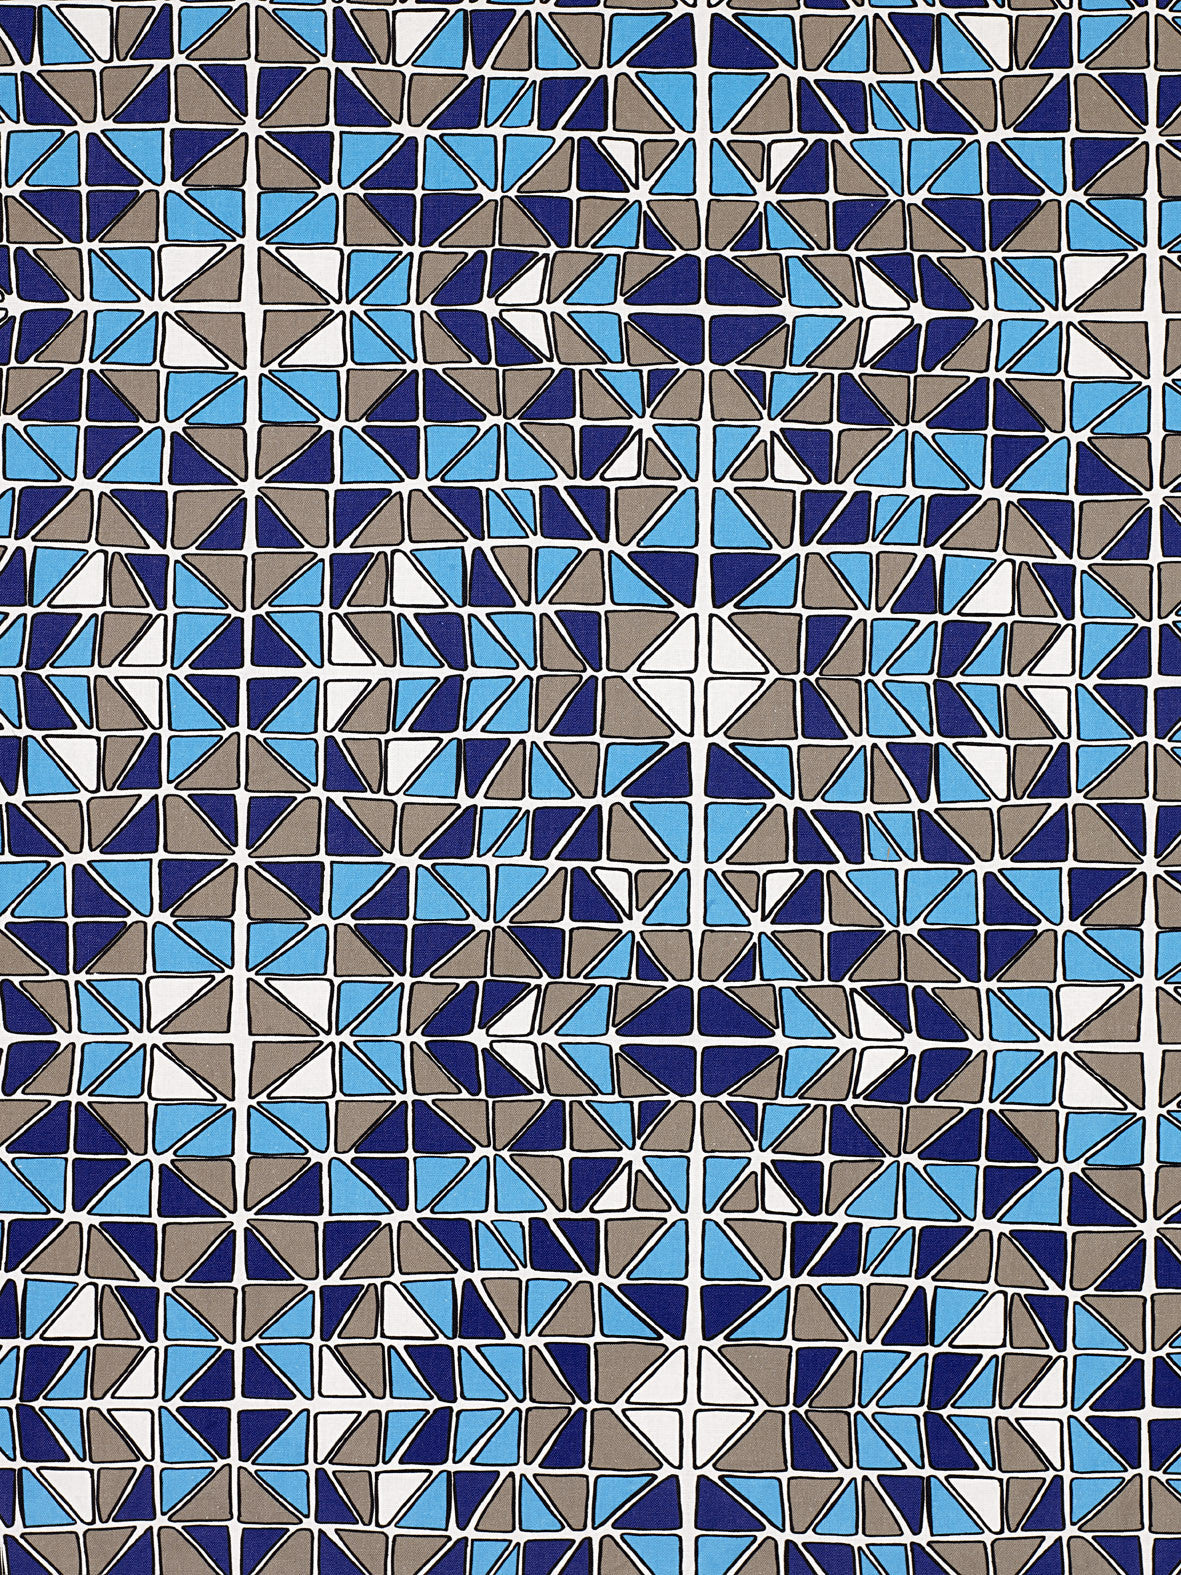 Mosaic Stained Glass Pattern Cotton Linen Home Decor Interiors Fabric by the Meter or yard for curtains, blinds or upholstery in Turquoise Blue, Aubergine & Grey ships from Canada (USA)